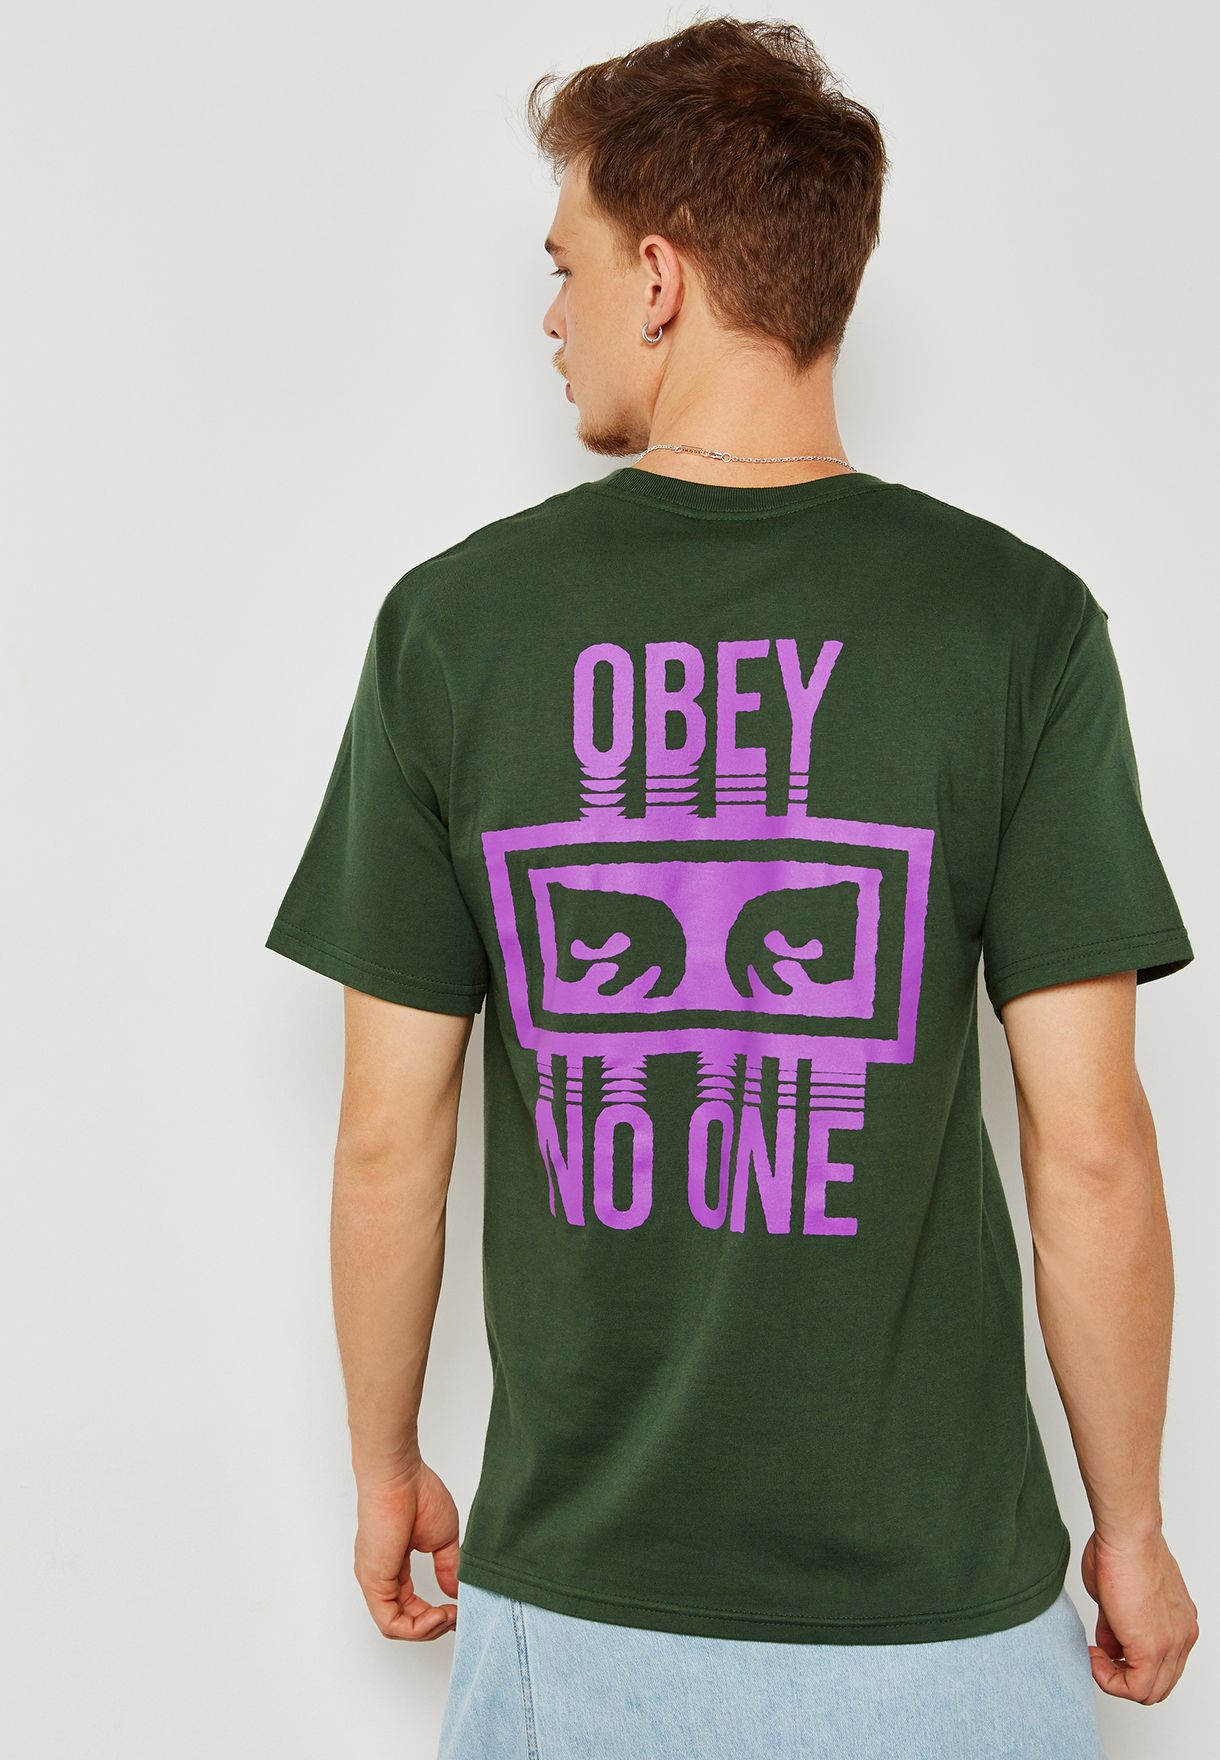 Obey No One Print T-Shirt